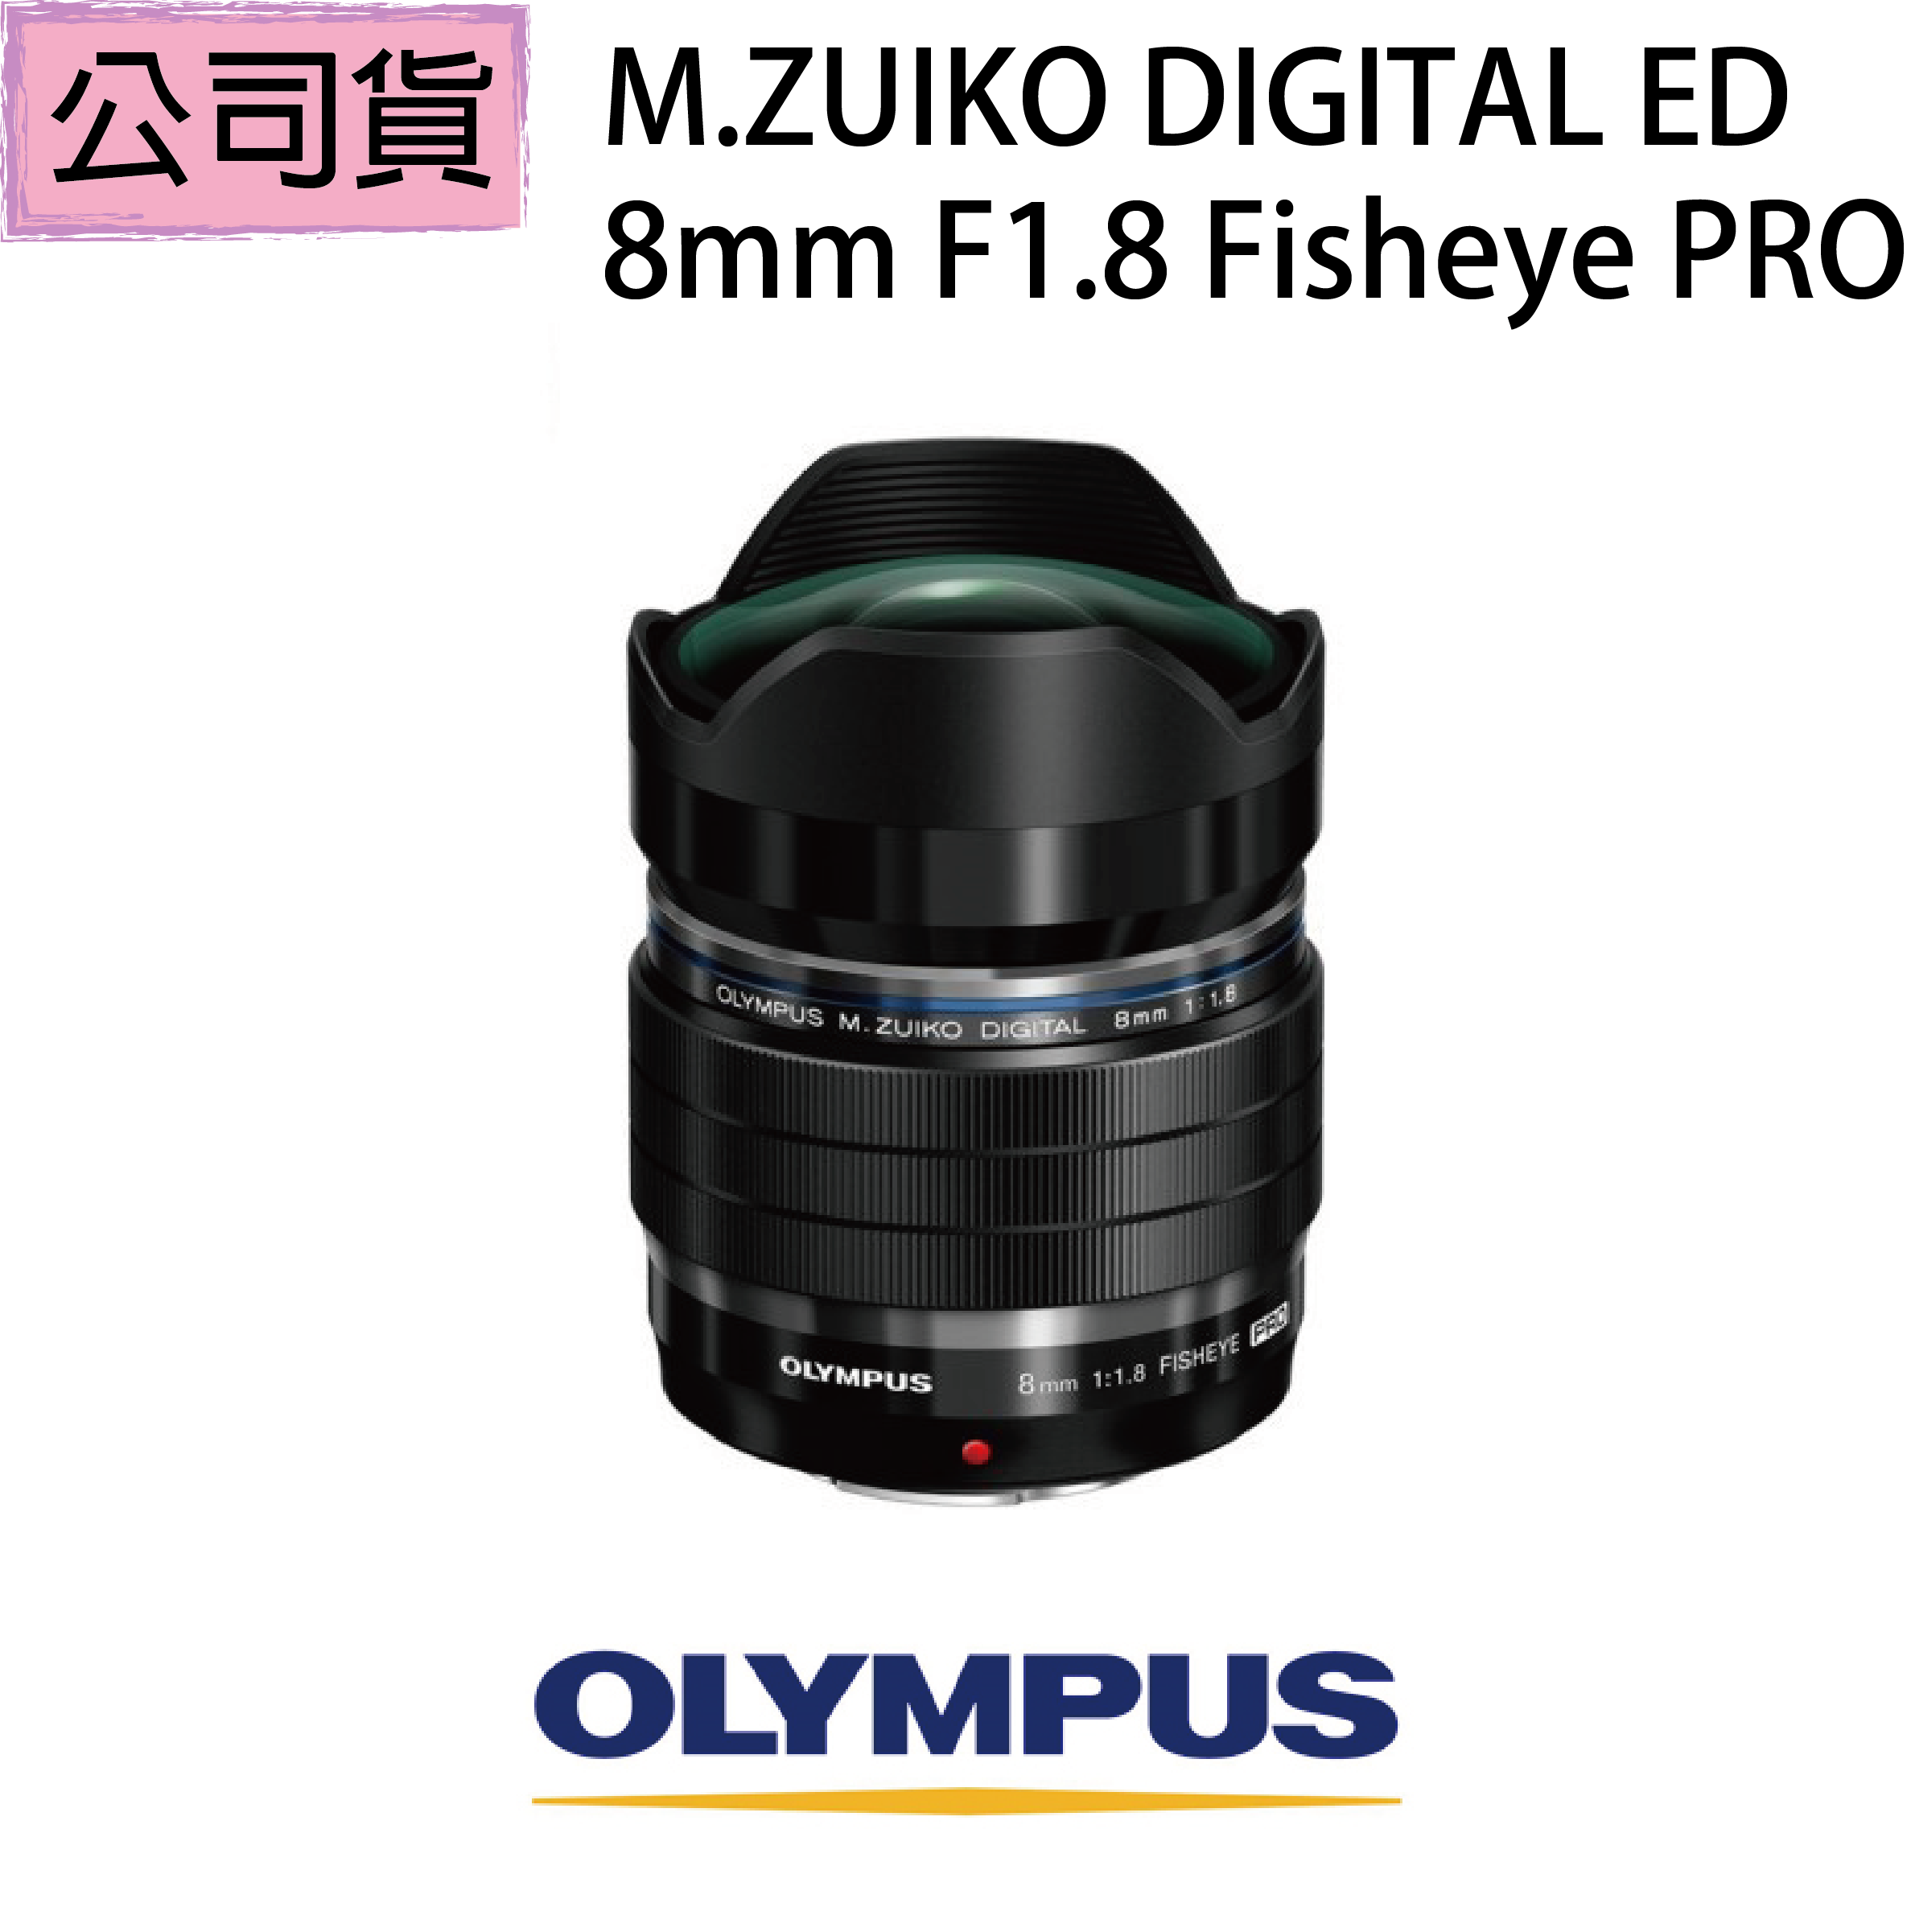 【OLYMPUS】M.ZUIKO DIGITAL ED 8mm F1.8 Fisheye PRO 大光圈魚眼鏡頭(公司貨)